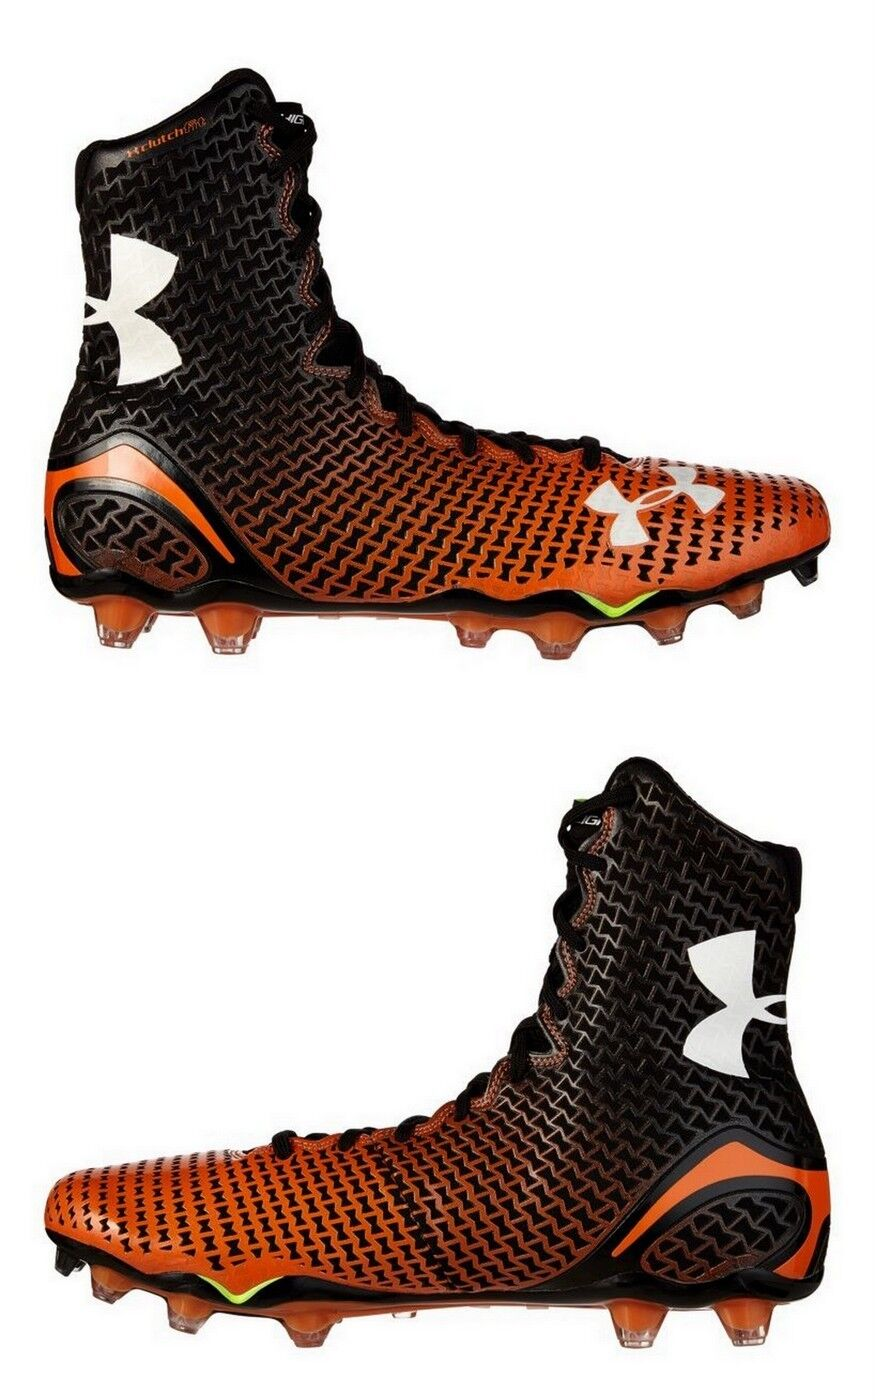 Under Armour Men's UA Highlight MC Football Cleats 1246123-081, Orange/Black, 15